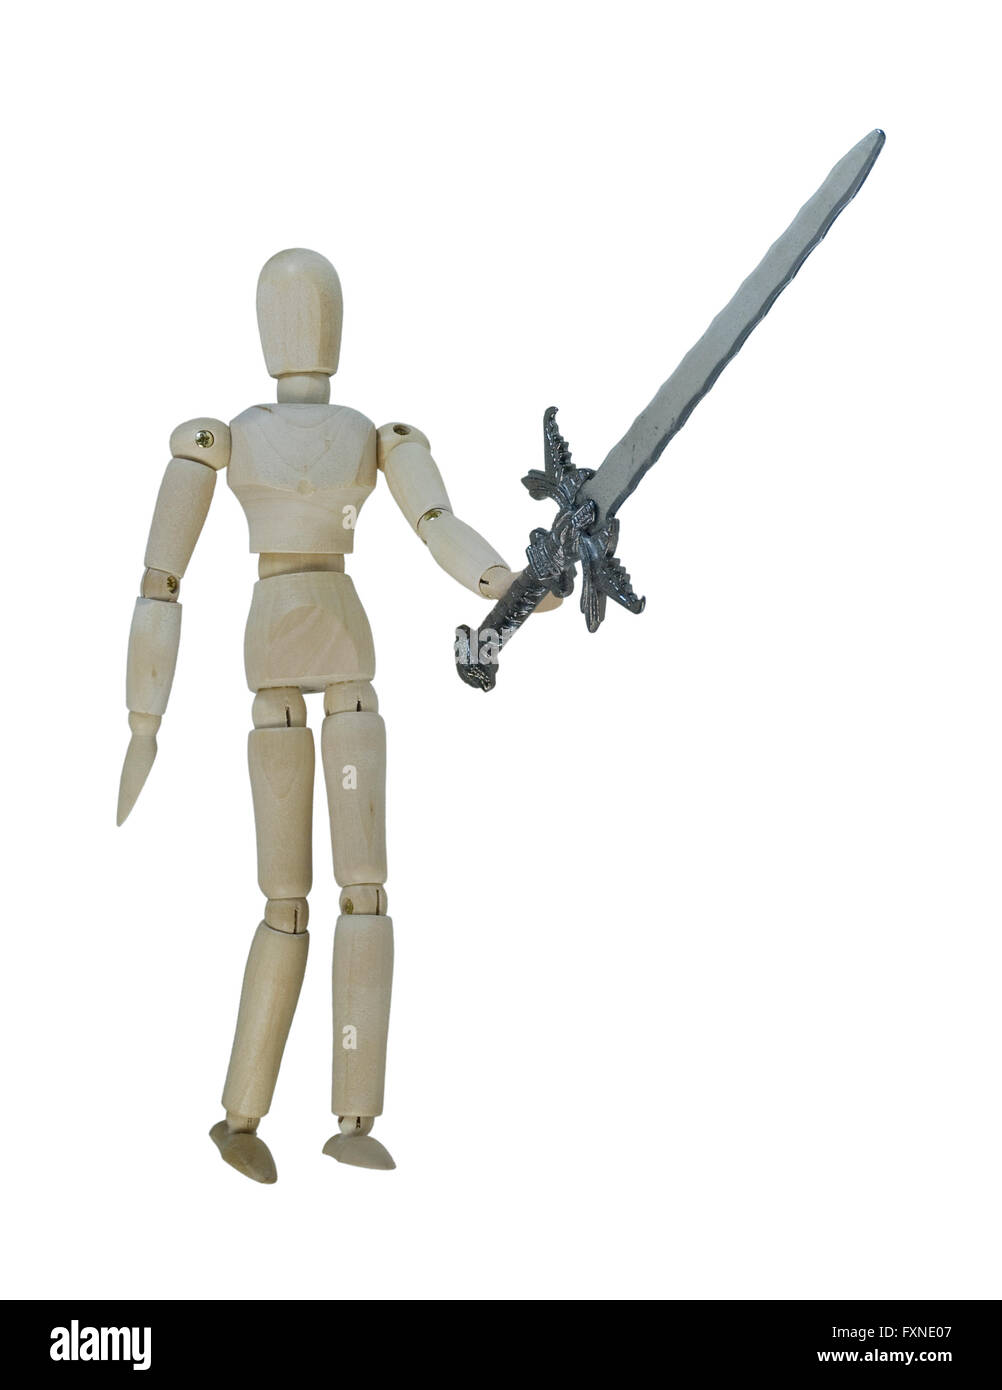 Man holding up a heavy sword - path included - Stock Image